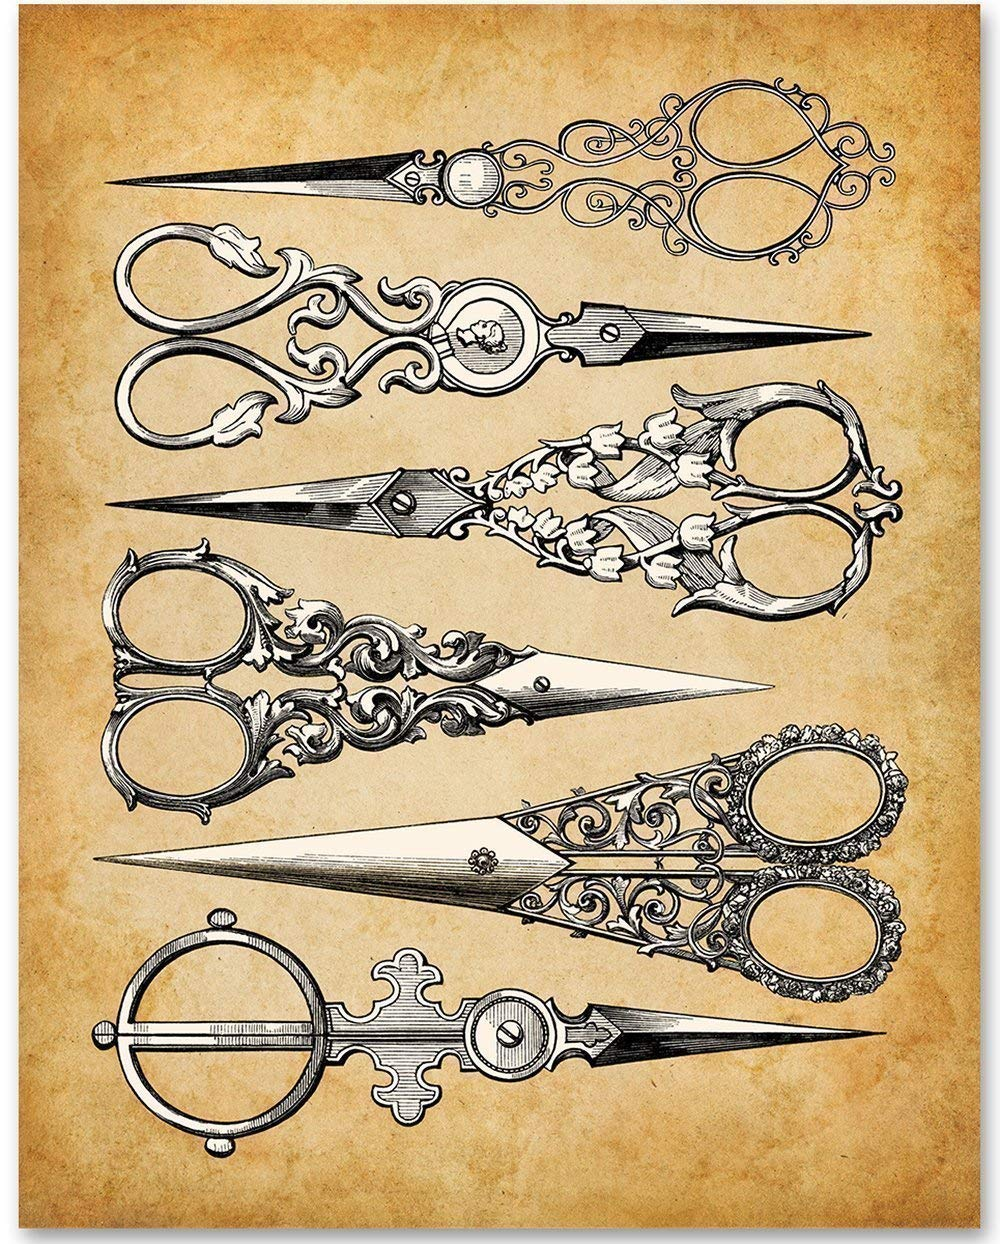 Sewing scissors wall art